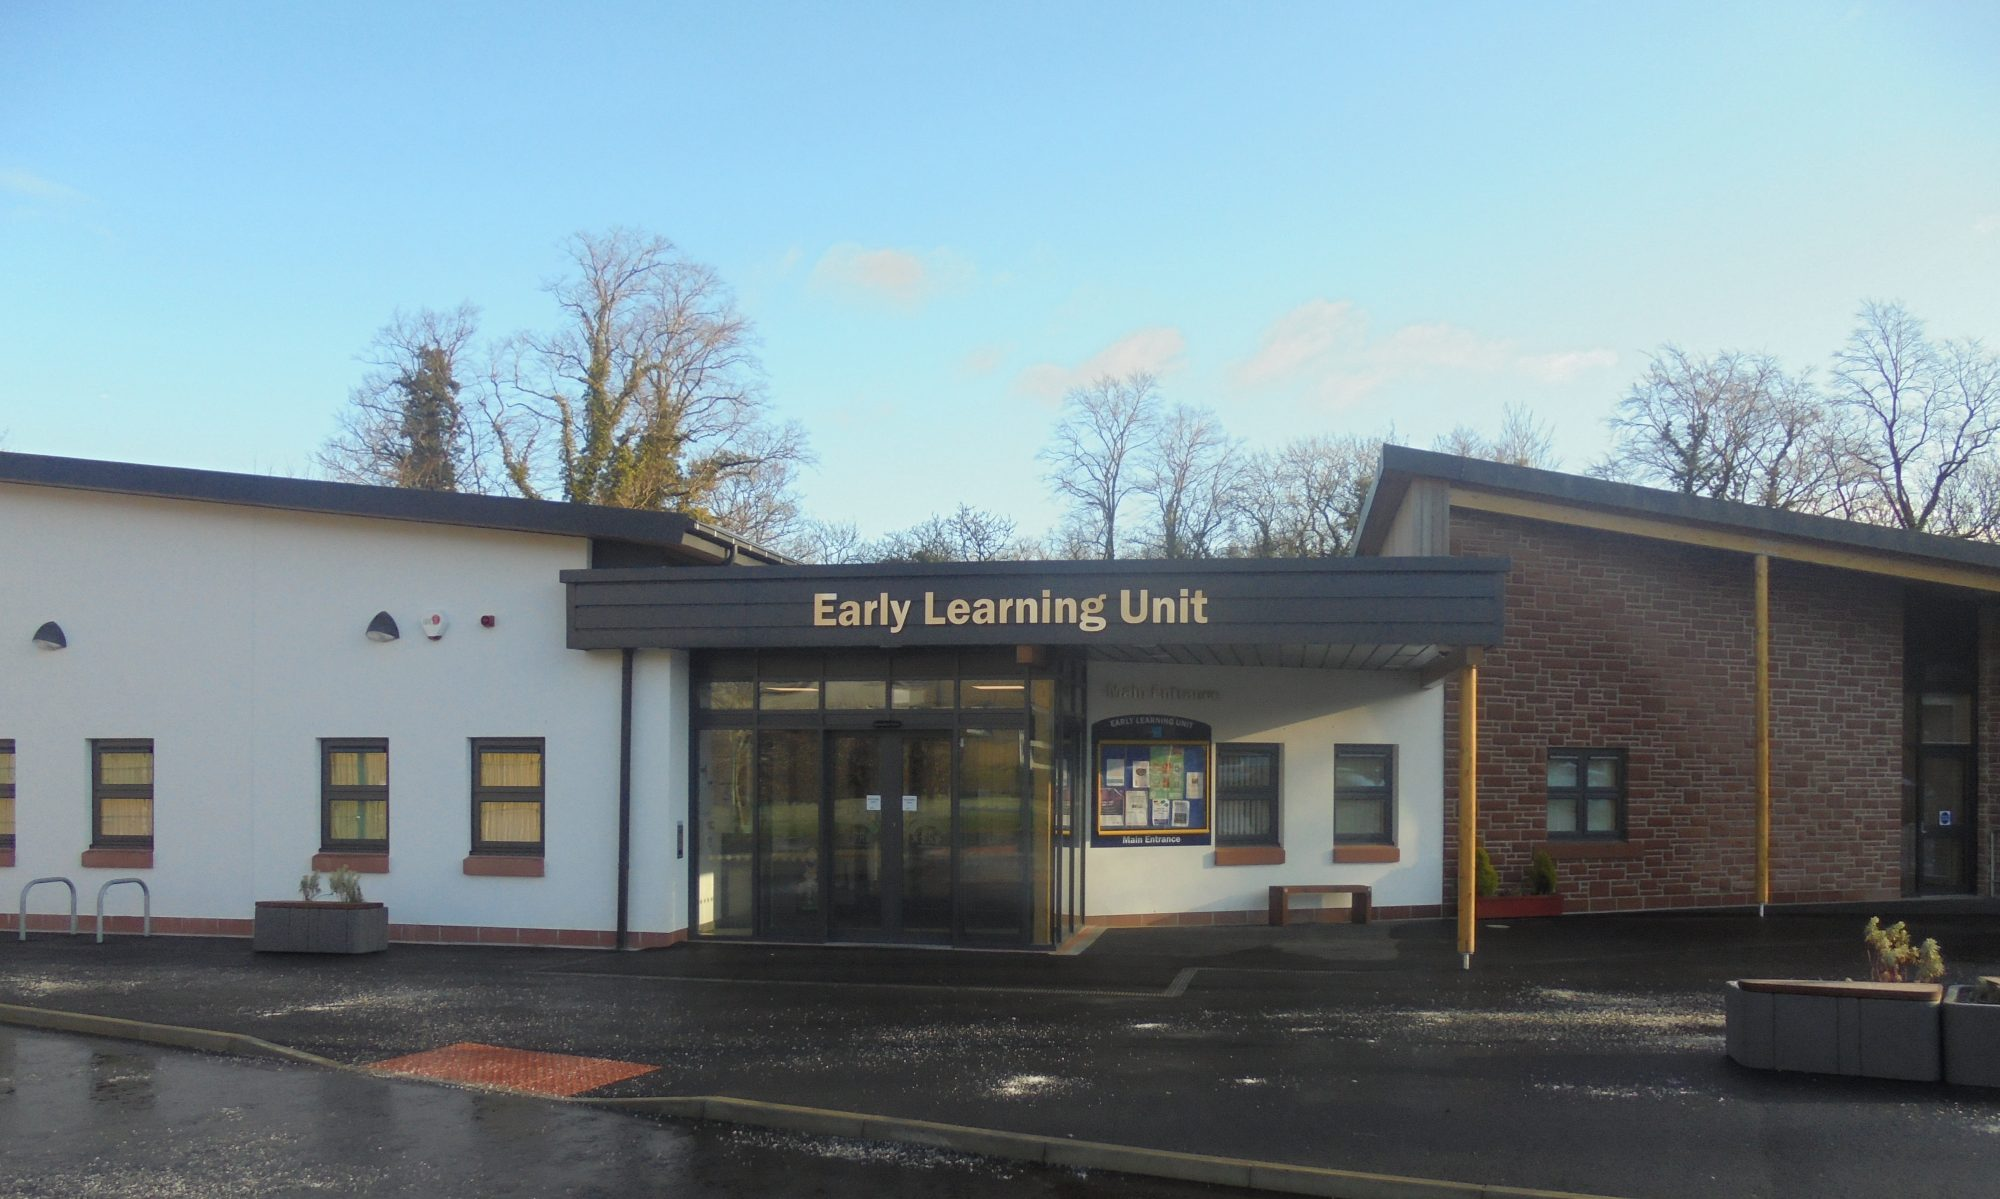 Early Learning Unit